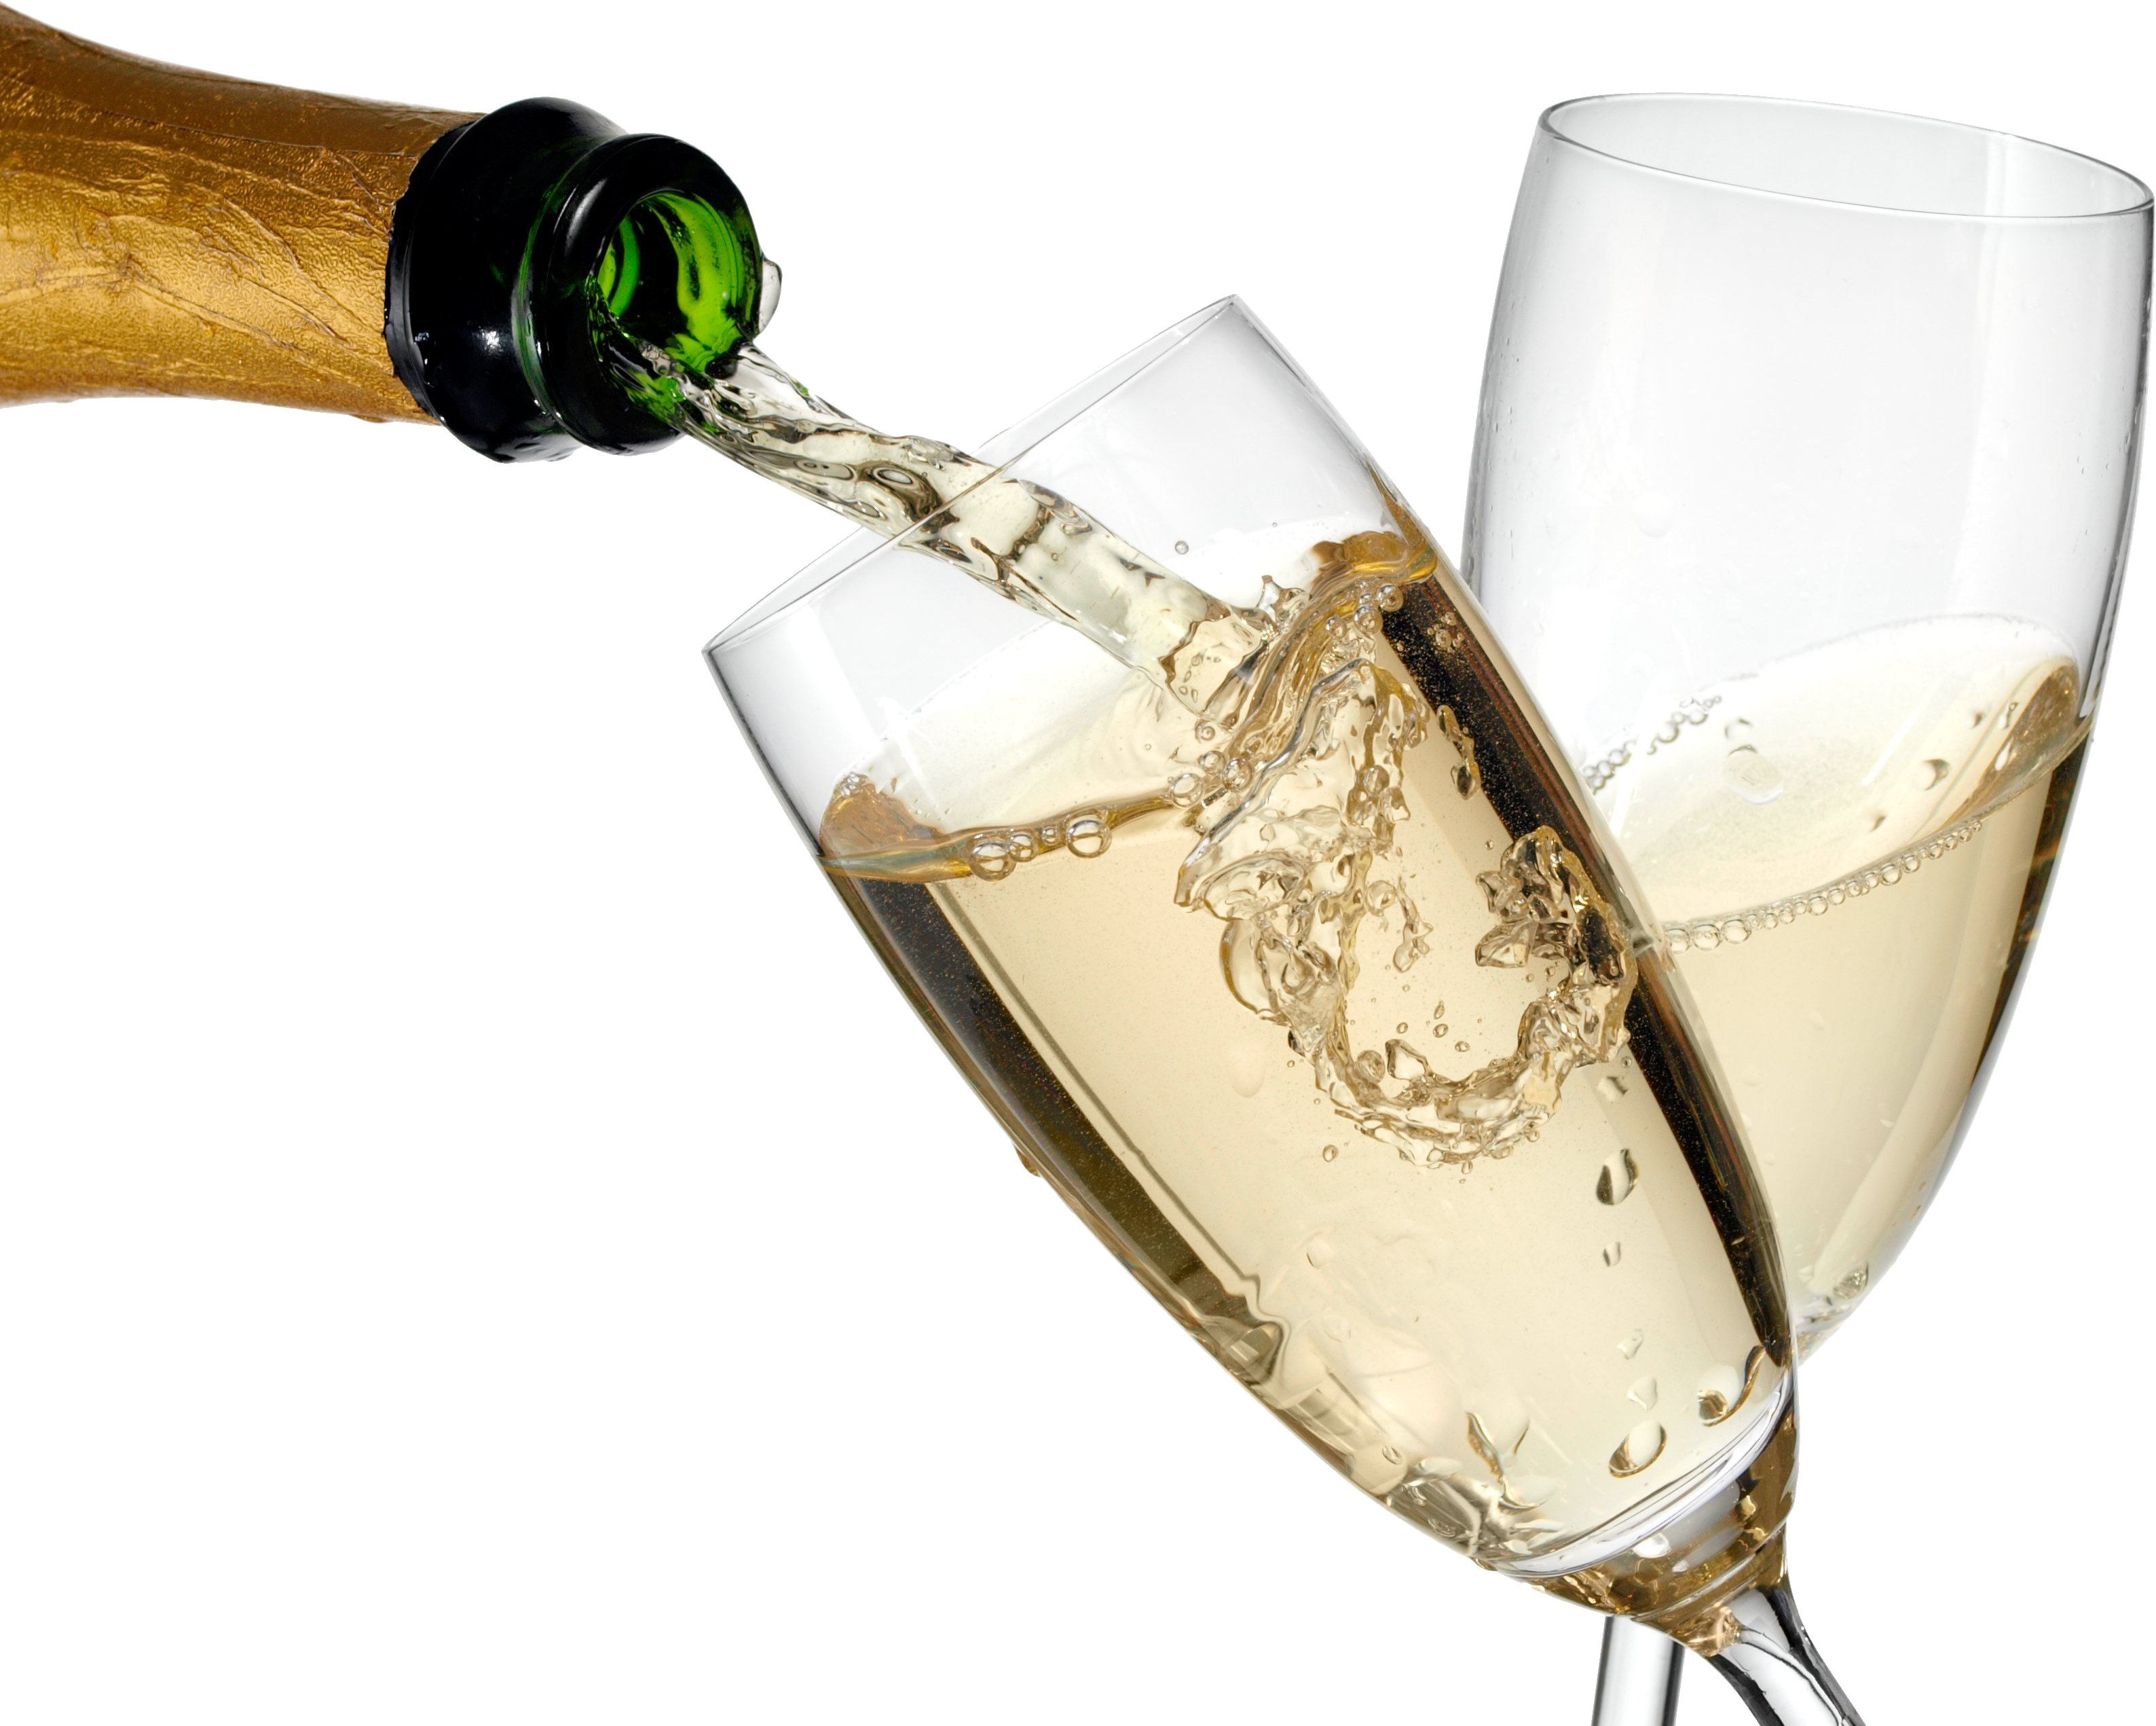 Champaign clipart sparkling champagne. Png images bottle glass